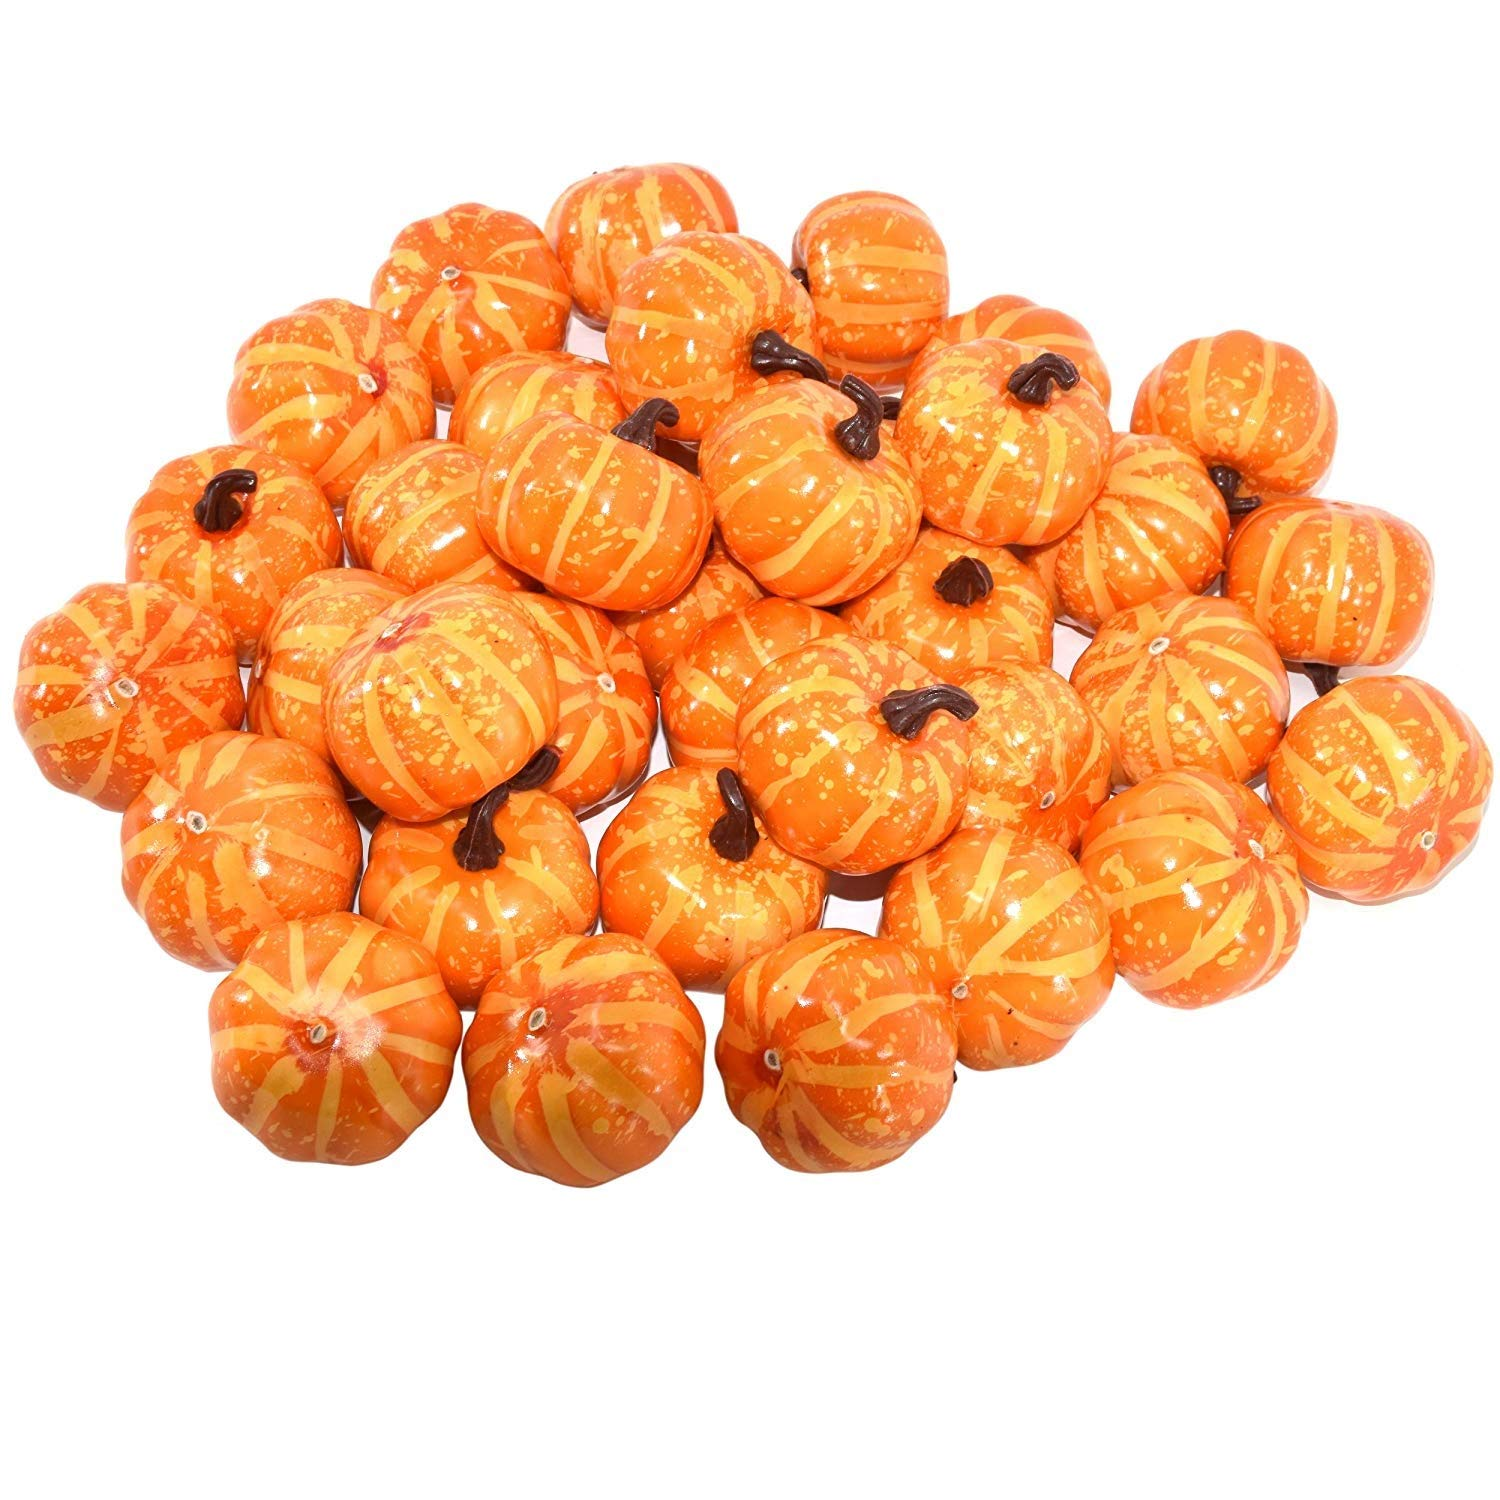 Gift Boutique 36 Count Artificial Realistic Halloween Harvest Mini Orange Pumpkins for Fall Autumn Thanksgiving Party Crafts and Home Décor 36 pumpkin